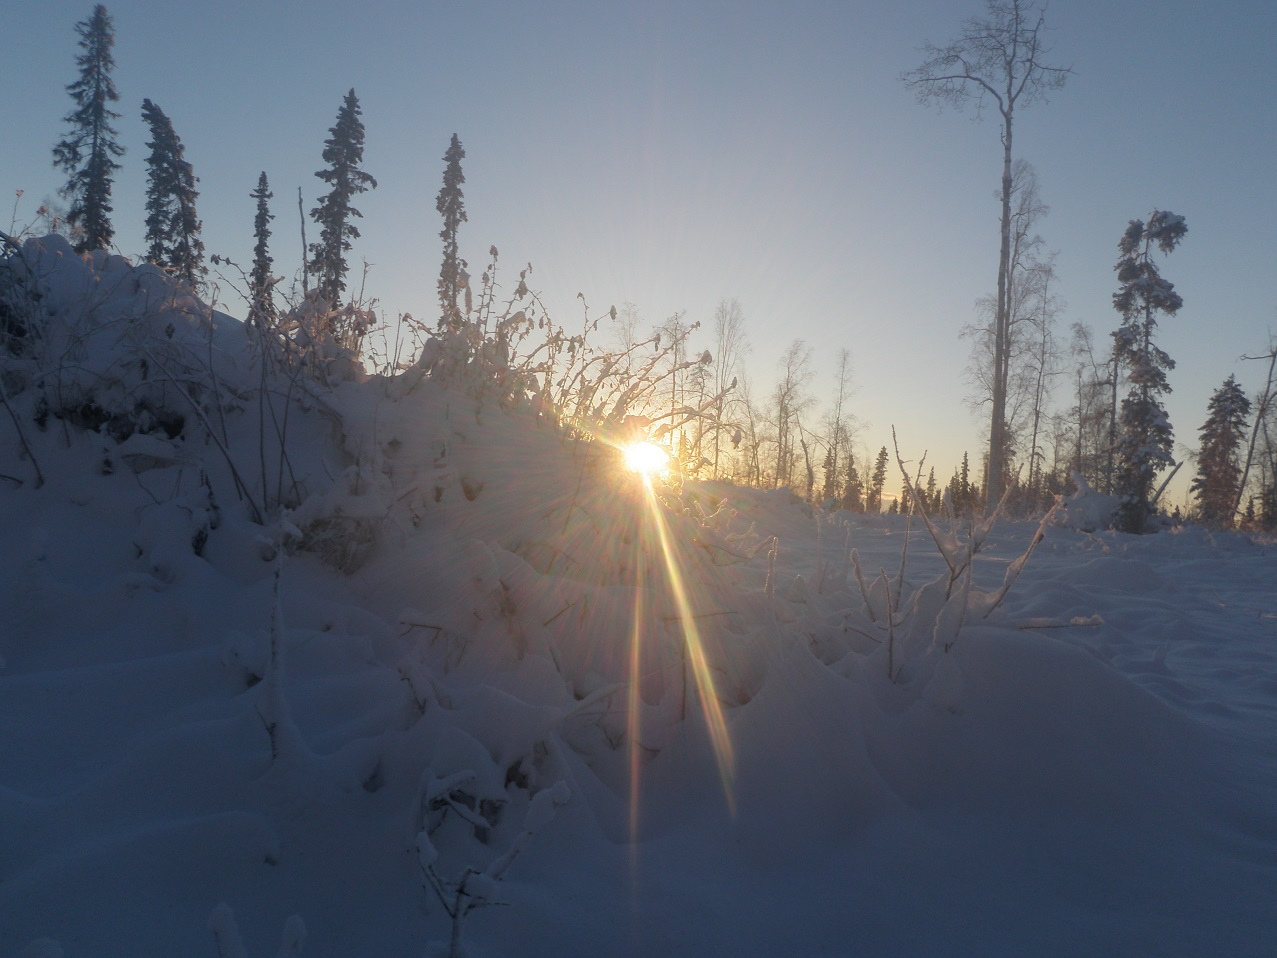 tanana single women Bios nations jordan joey zuray explains the key factors to surviving winter in tanana i agree to receive information from discovery communications in.